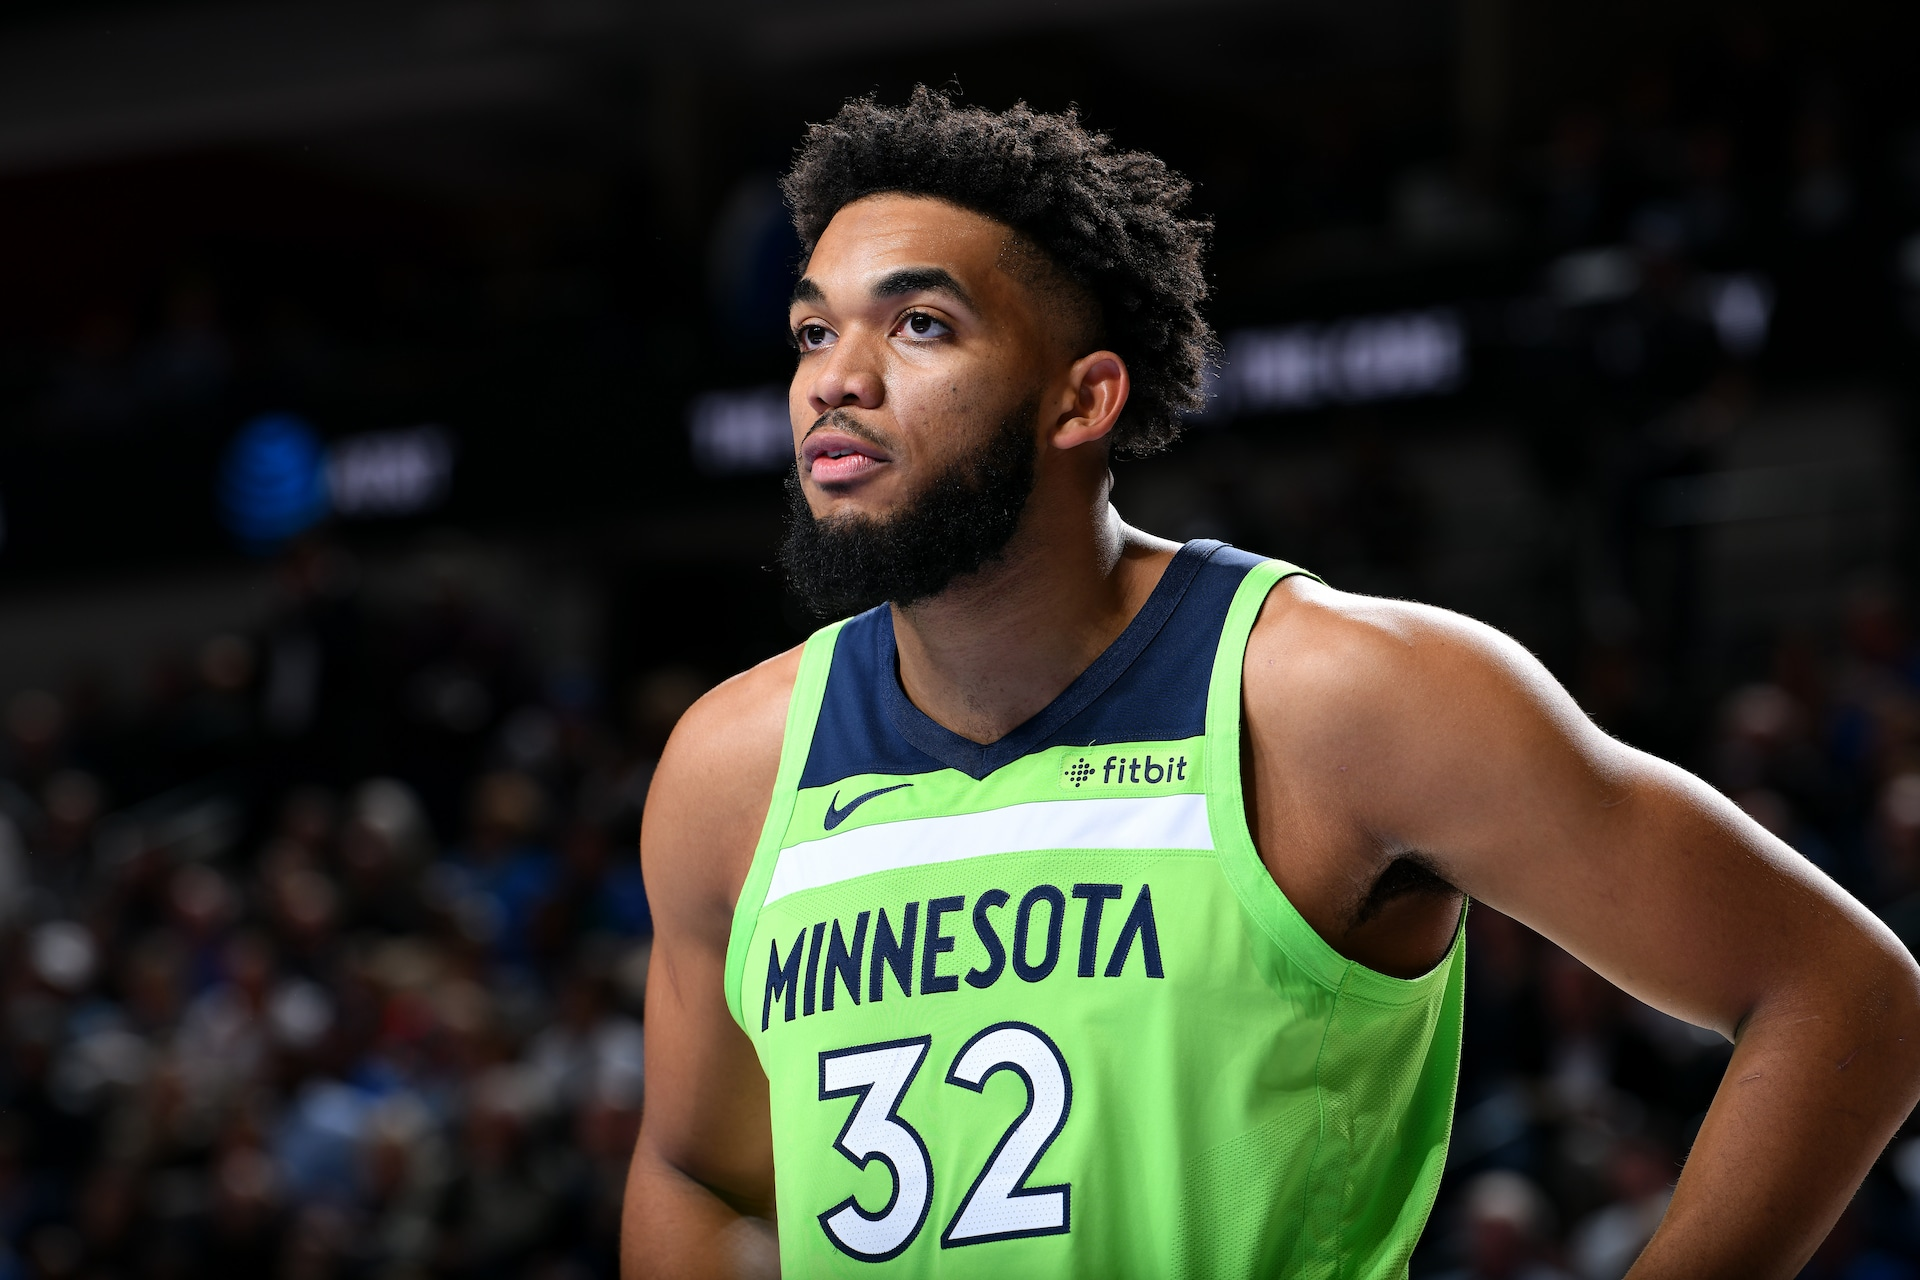 Statement on donation from Karl-Anthony Towns